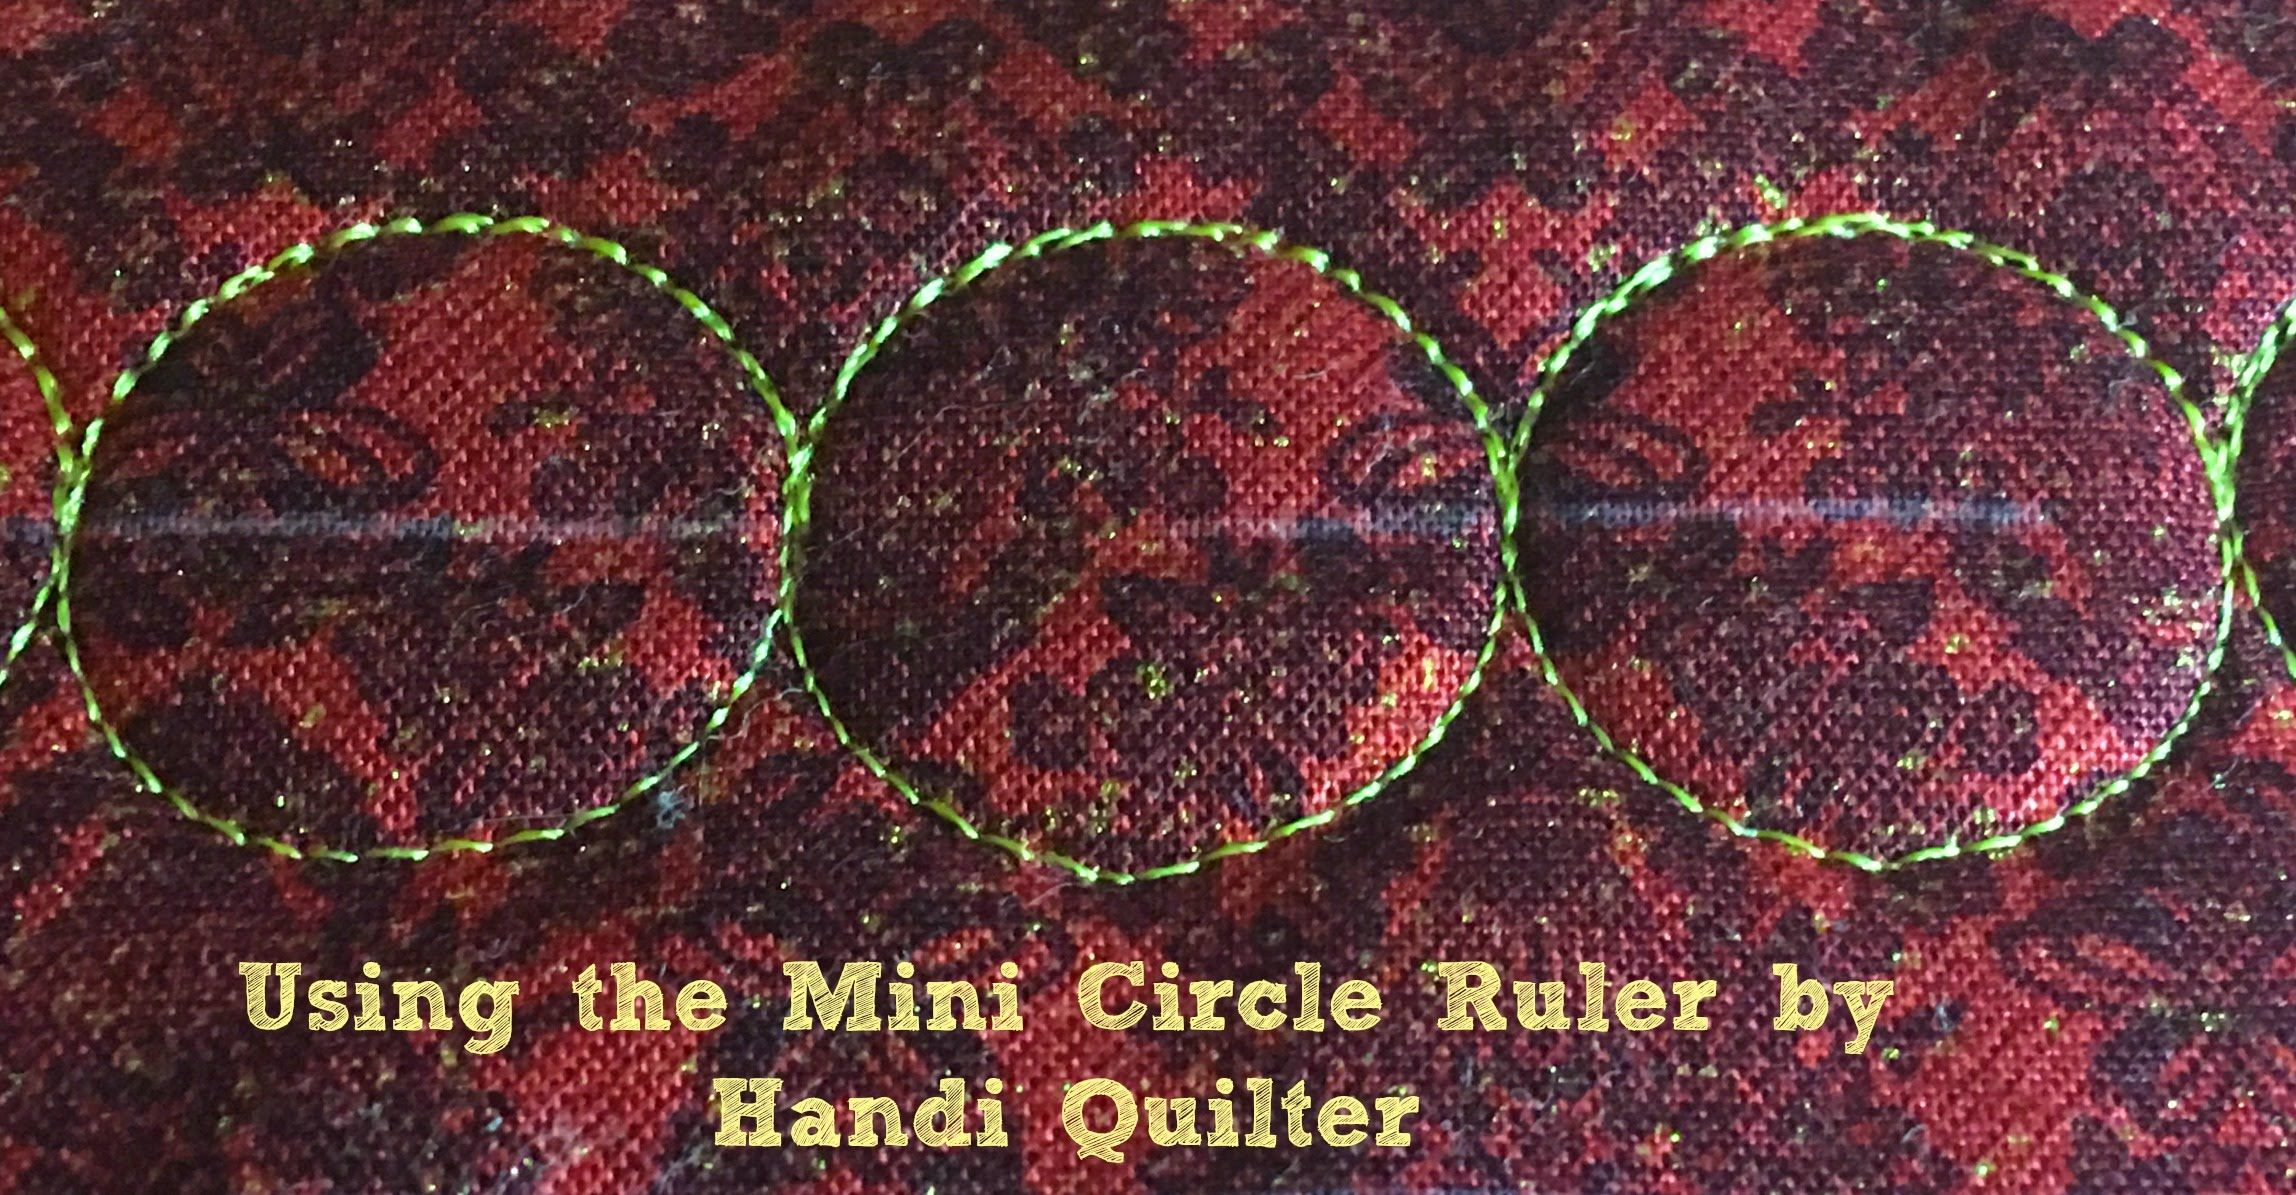 10 best images about Handi Quilter videos on Pinterest